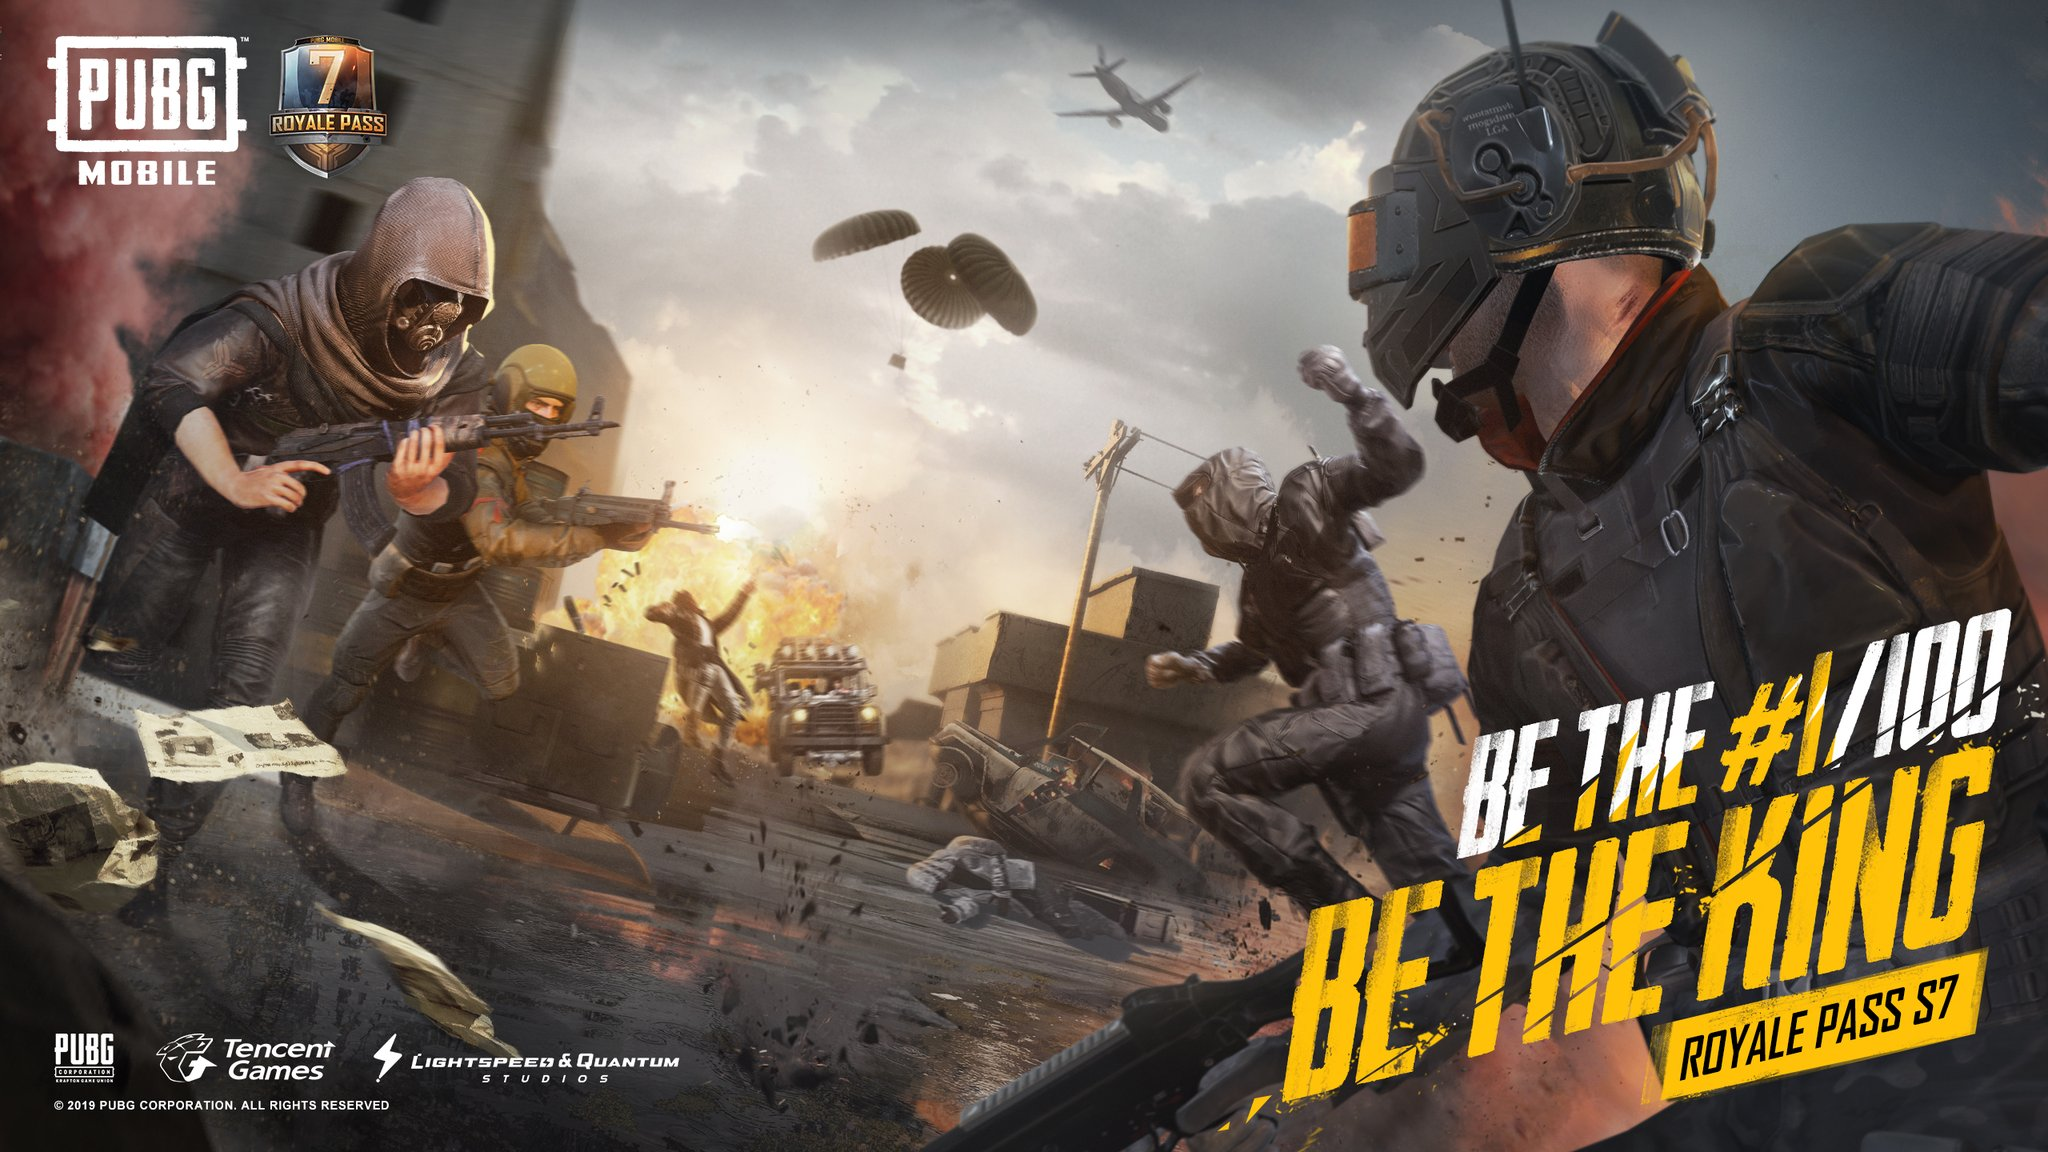 Pubg Mobile New Wallpaper 2019 Pubg Free 2